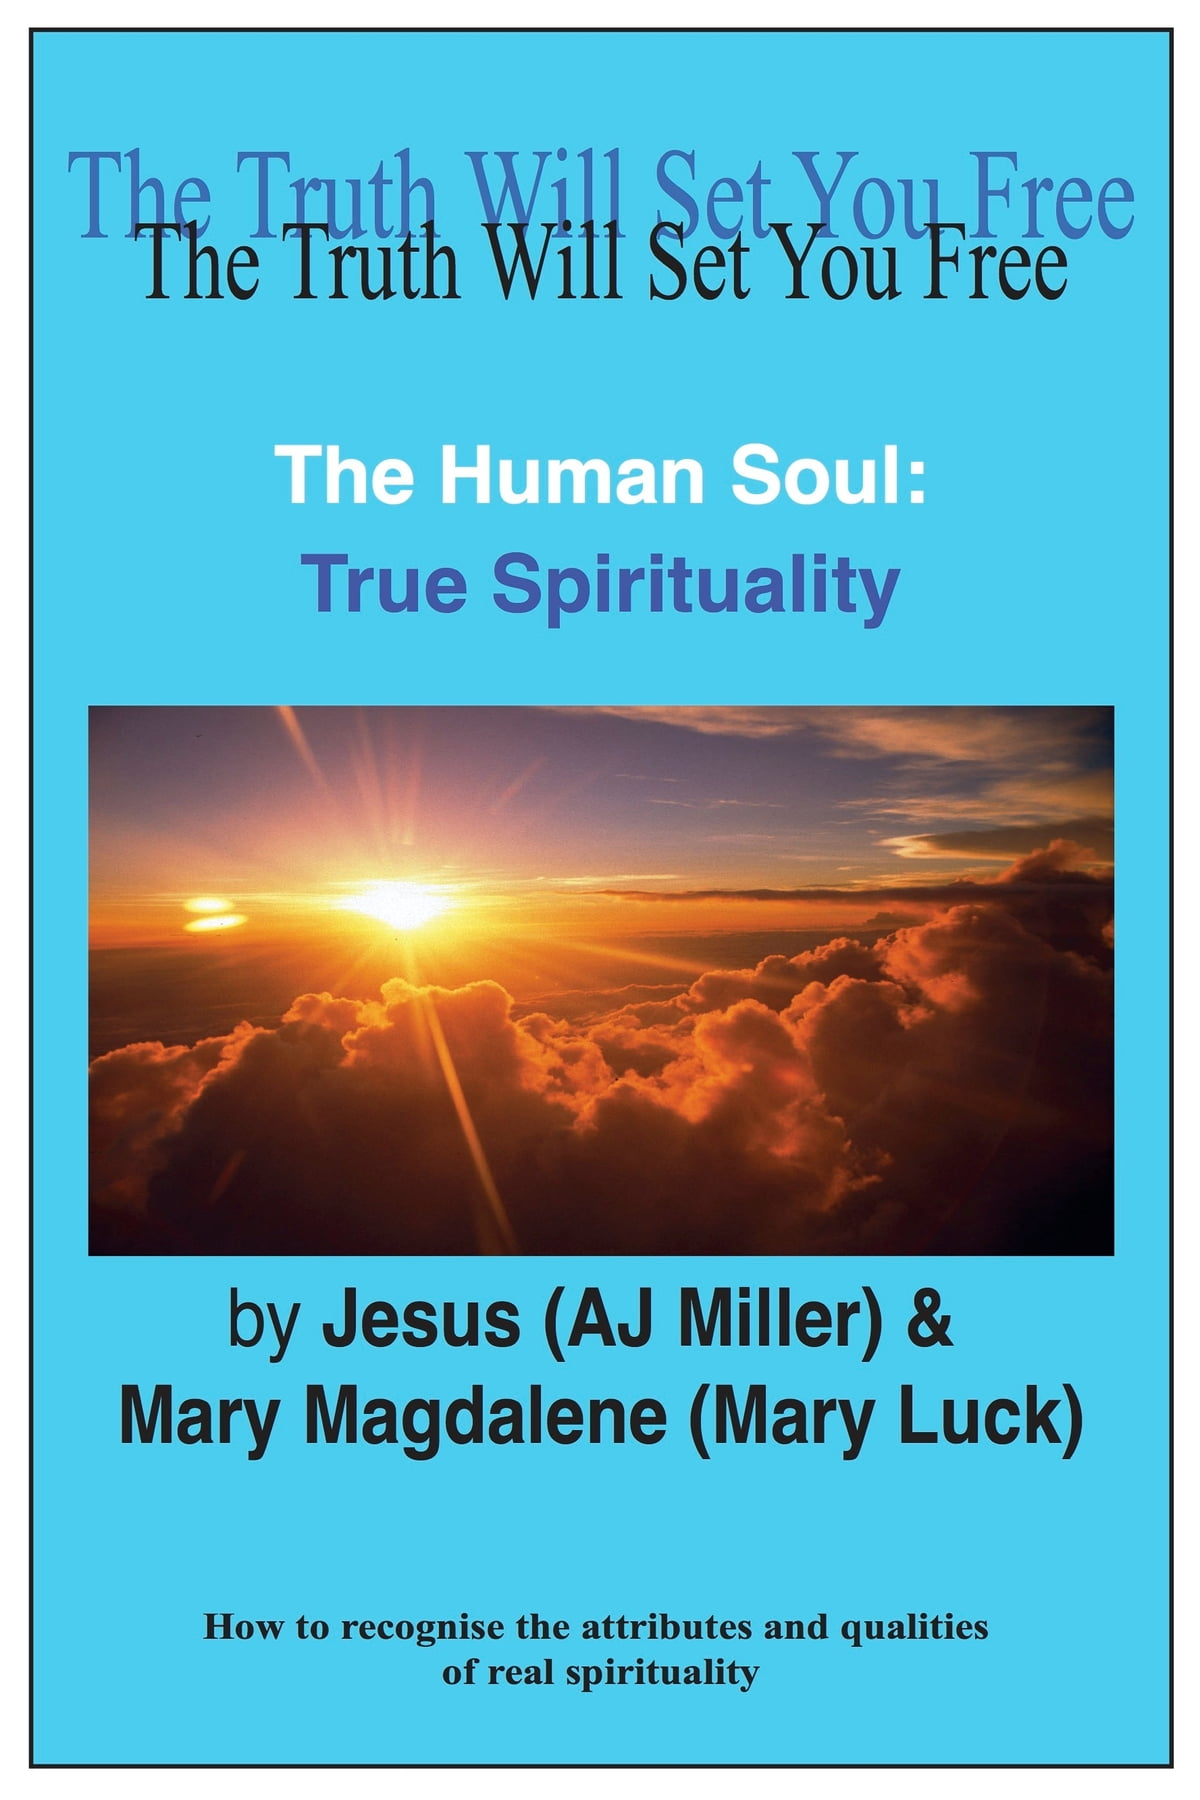 The Human Soul: True Spirituality Ebook By Jesus (aj Miller)   9781301896530  Kobo